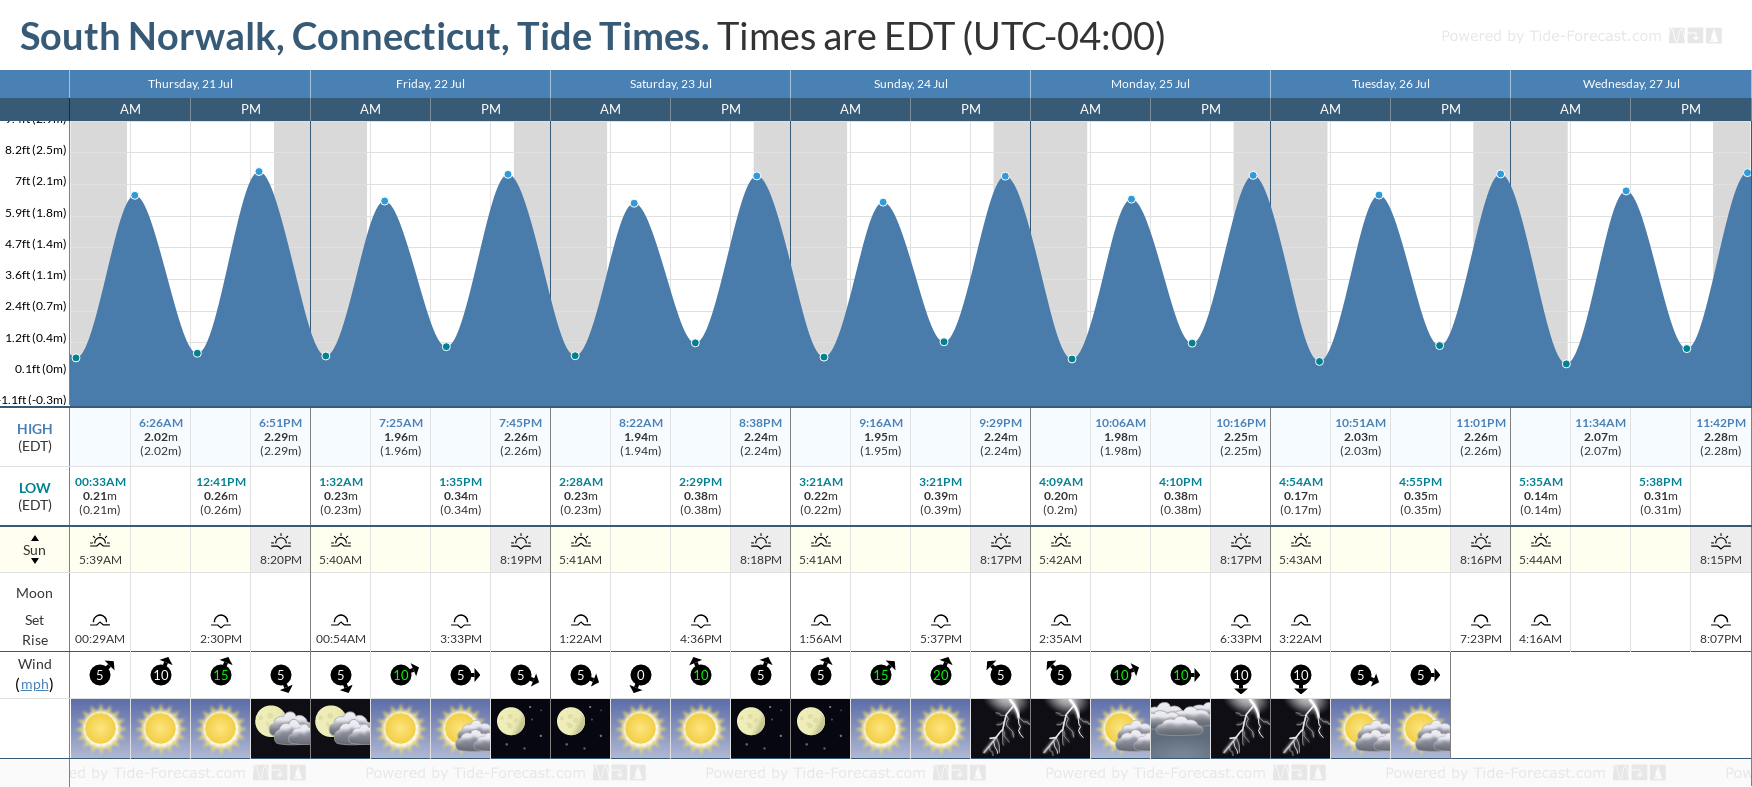 South Norwalk, Connecticut Tide Chart including high and low tide tide times for the next 7 days